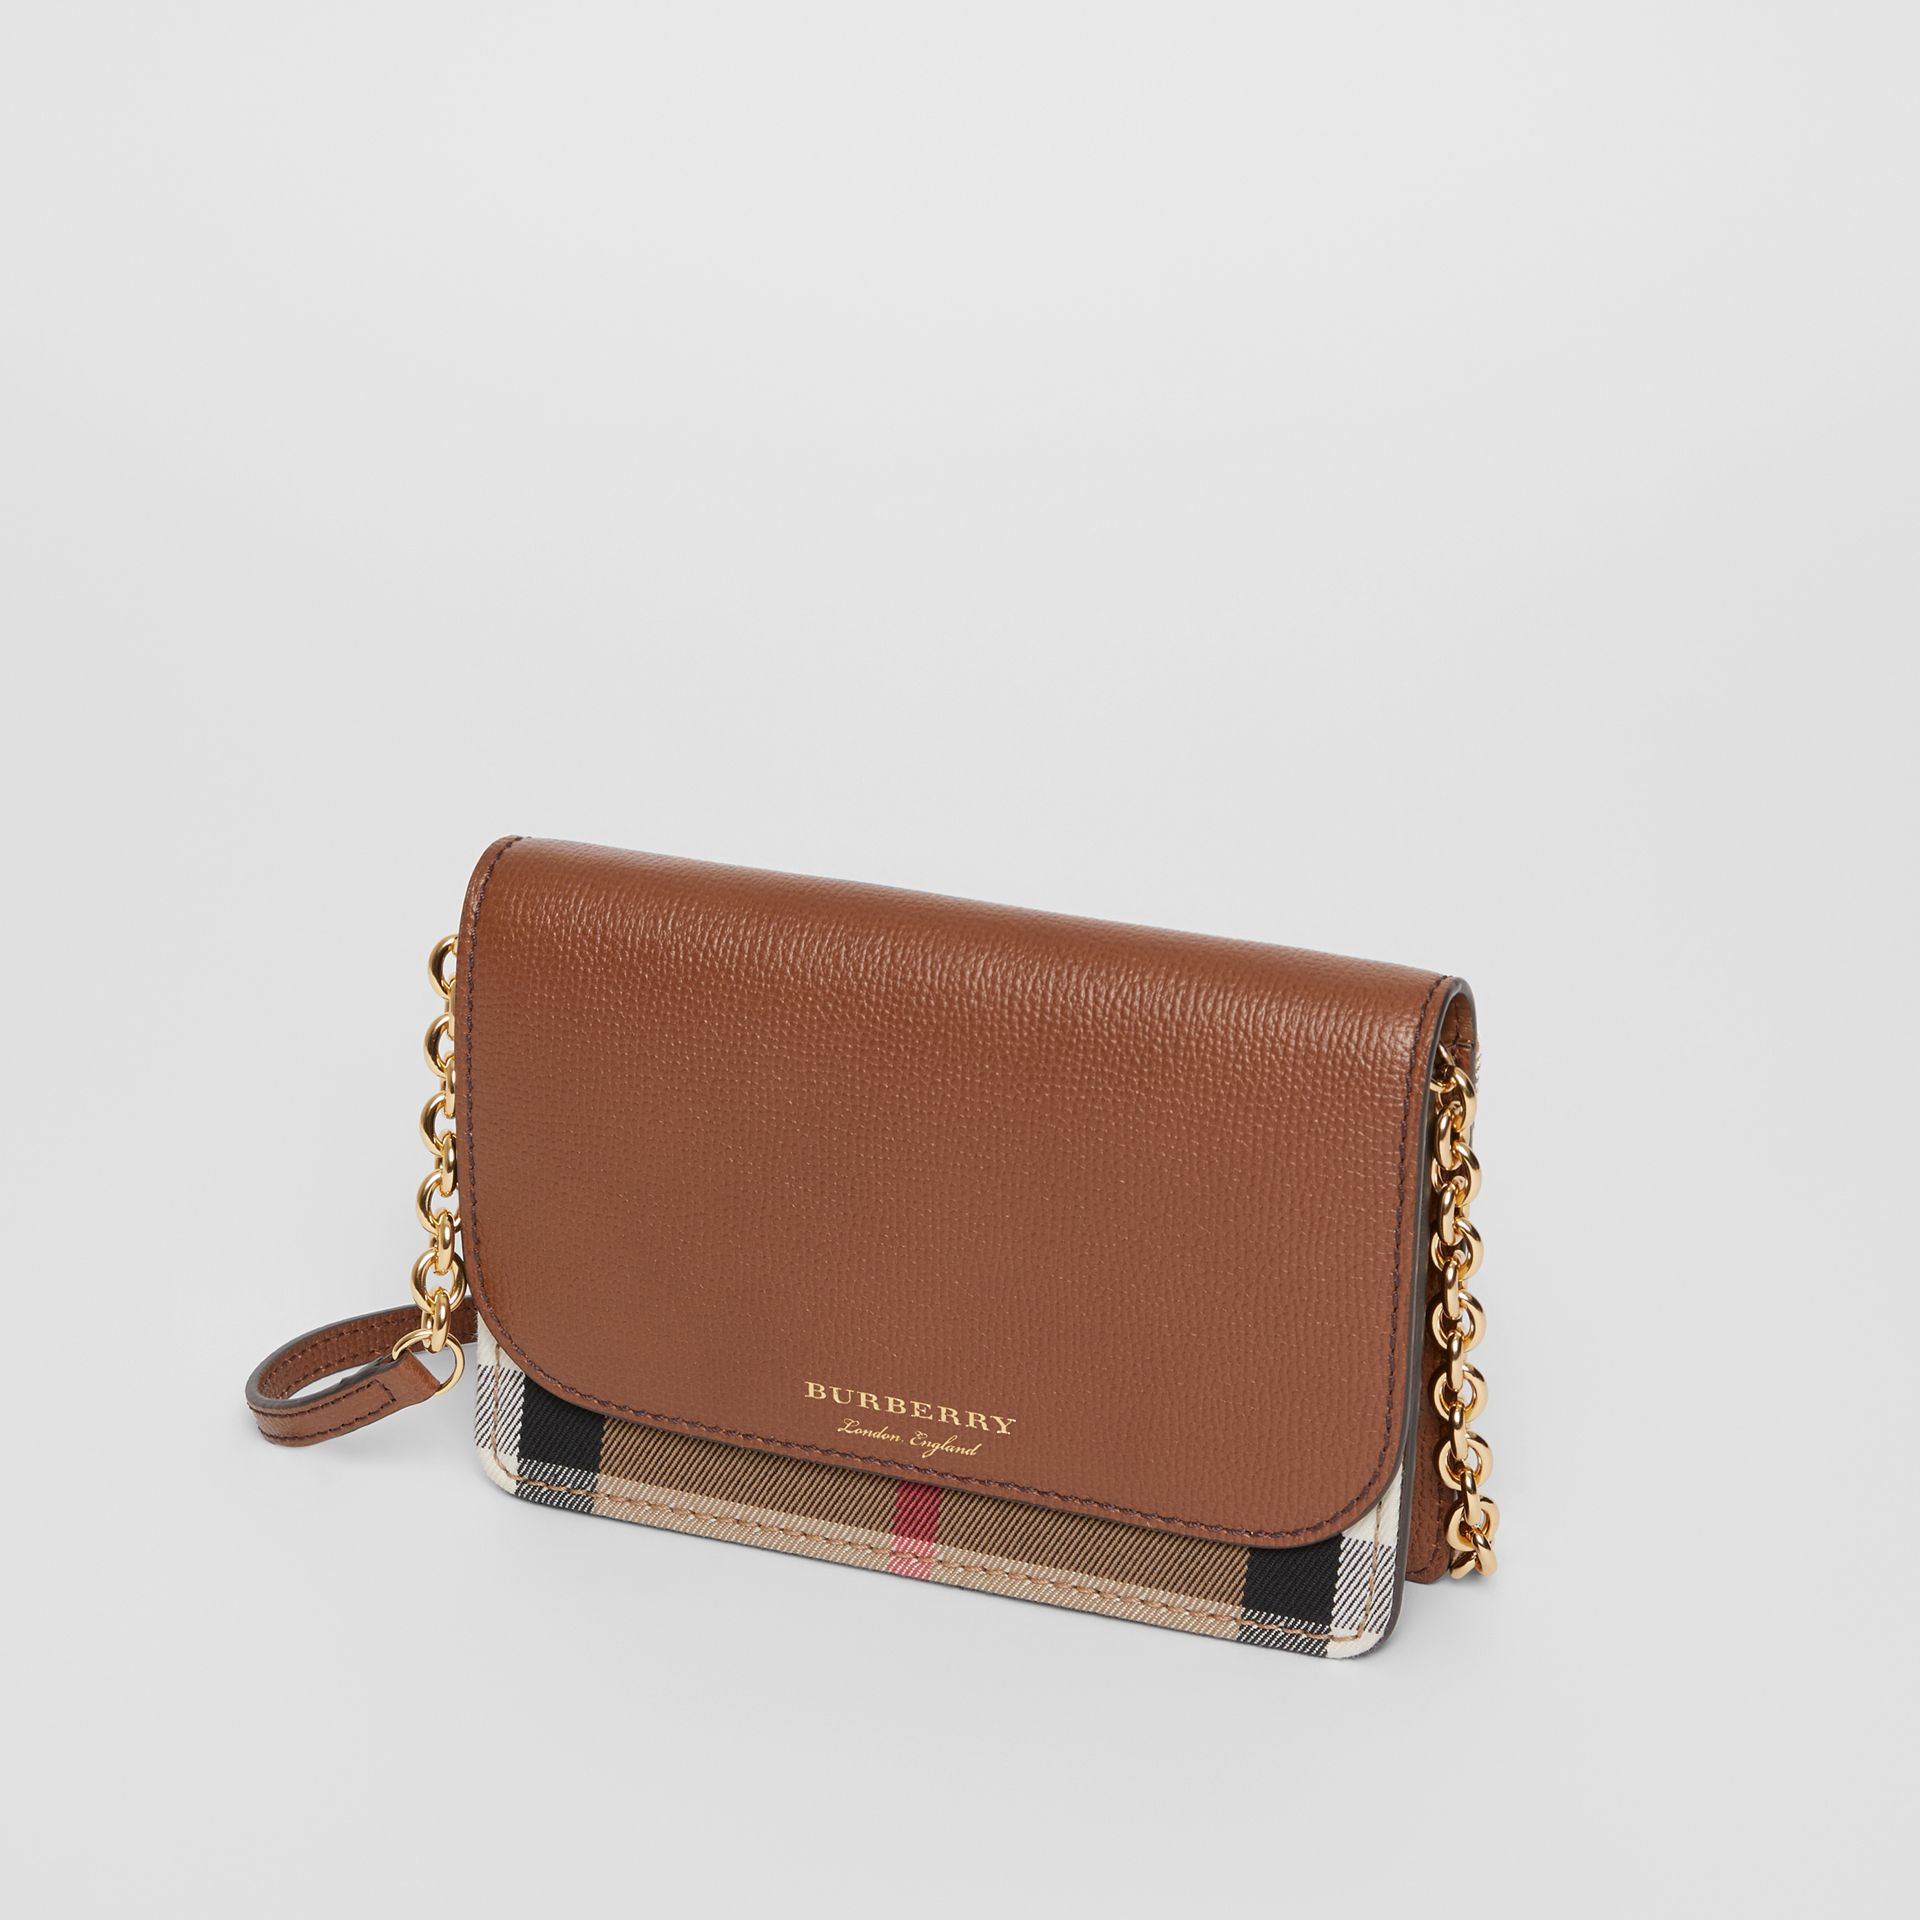 Leather and House Check Wallet with Detachable Strap in Tan - Women | Burberry Australia - gallery image 4